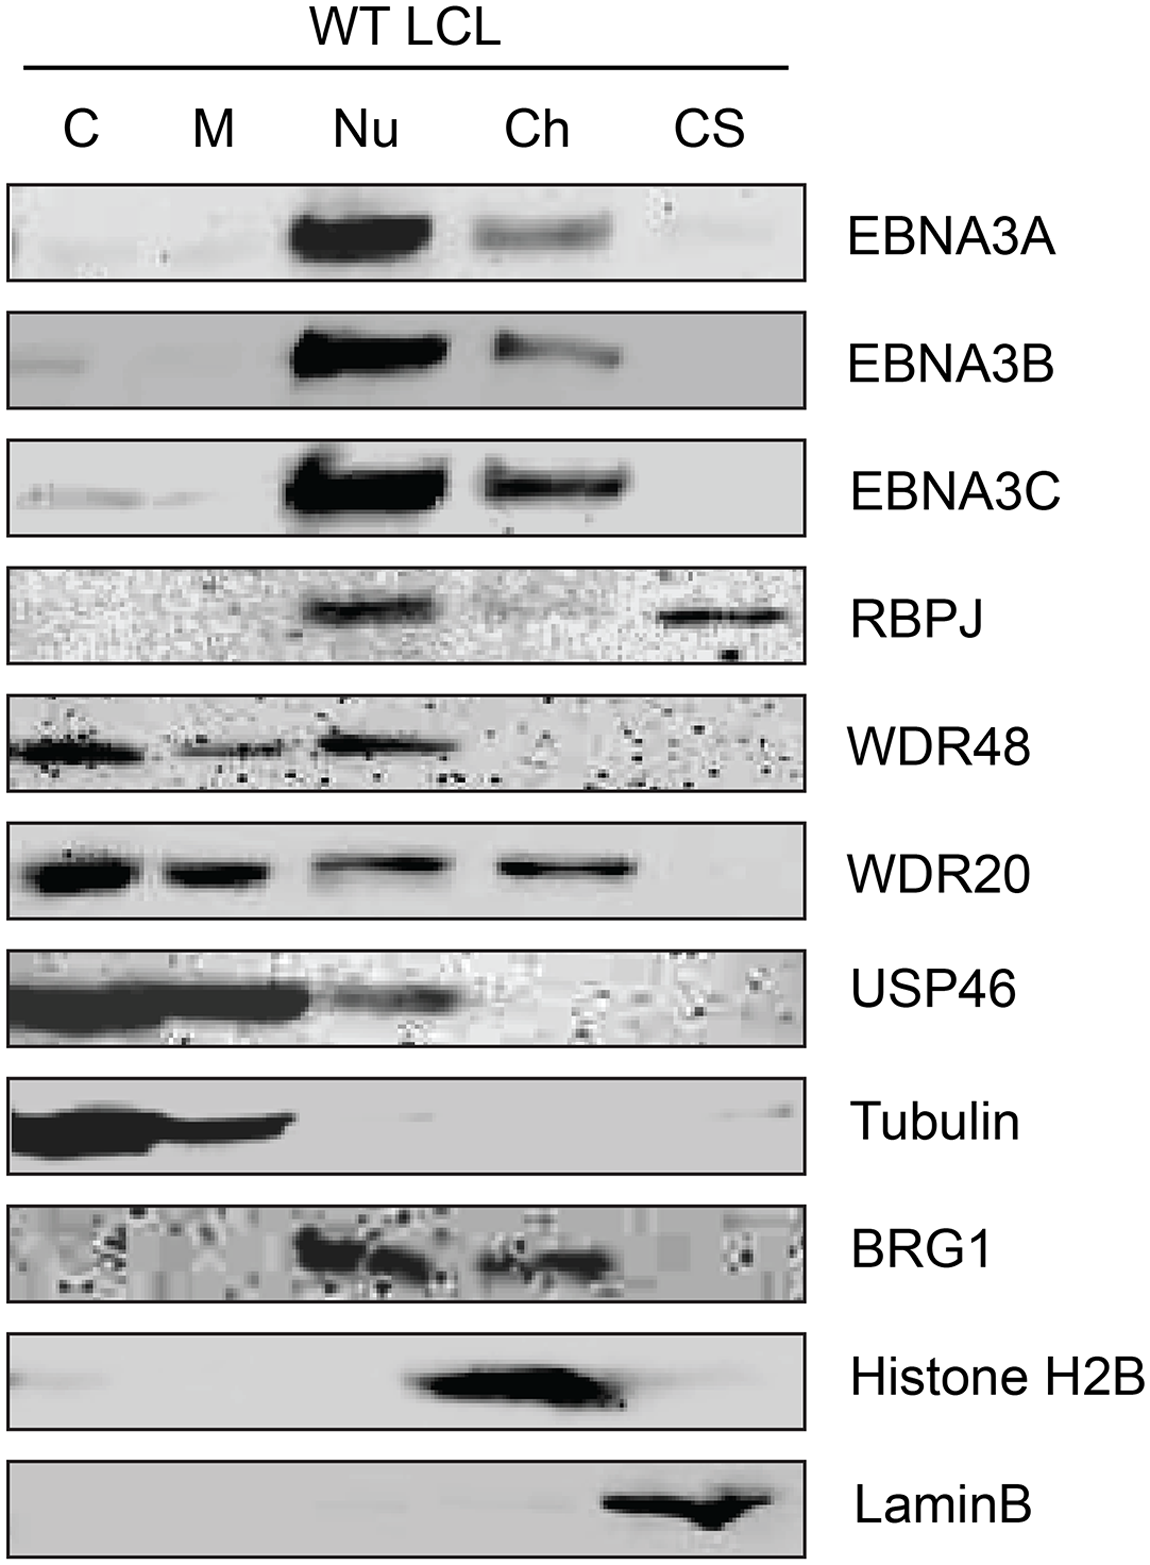 Subcellular localization of USP46 complexes in LCLs.